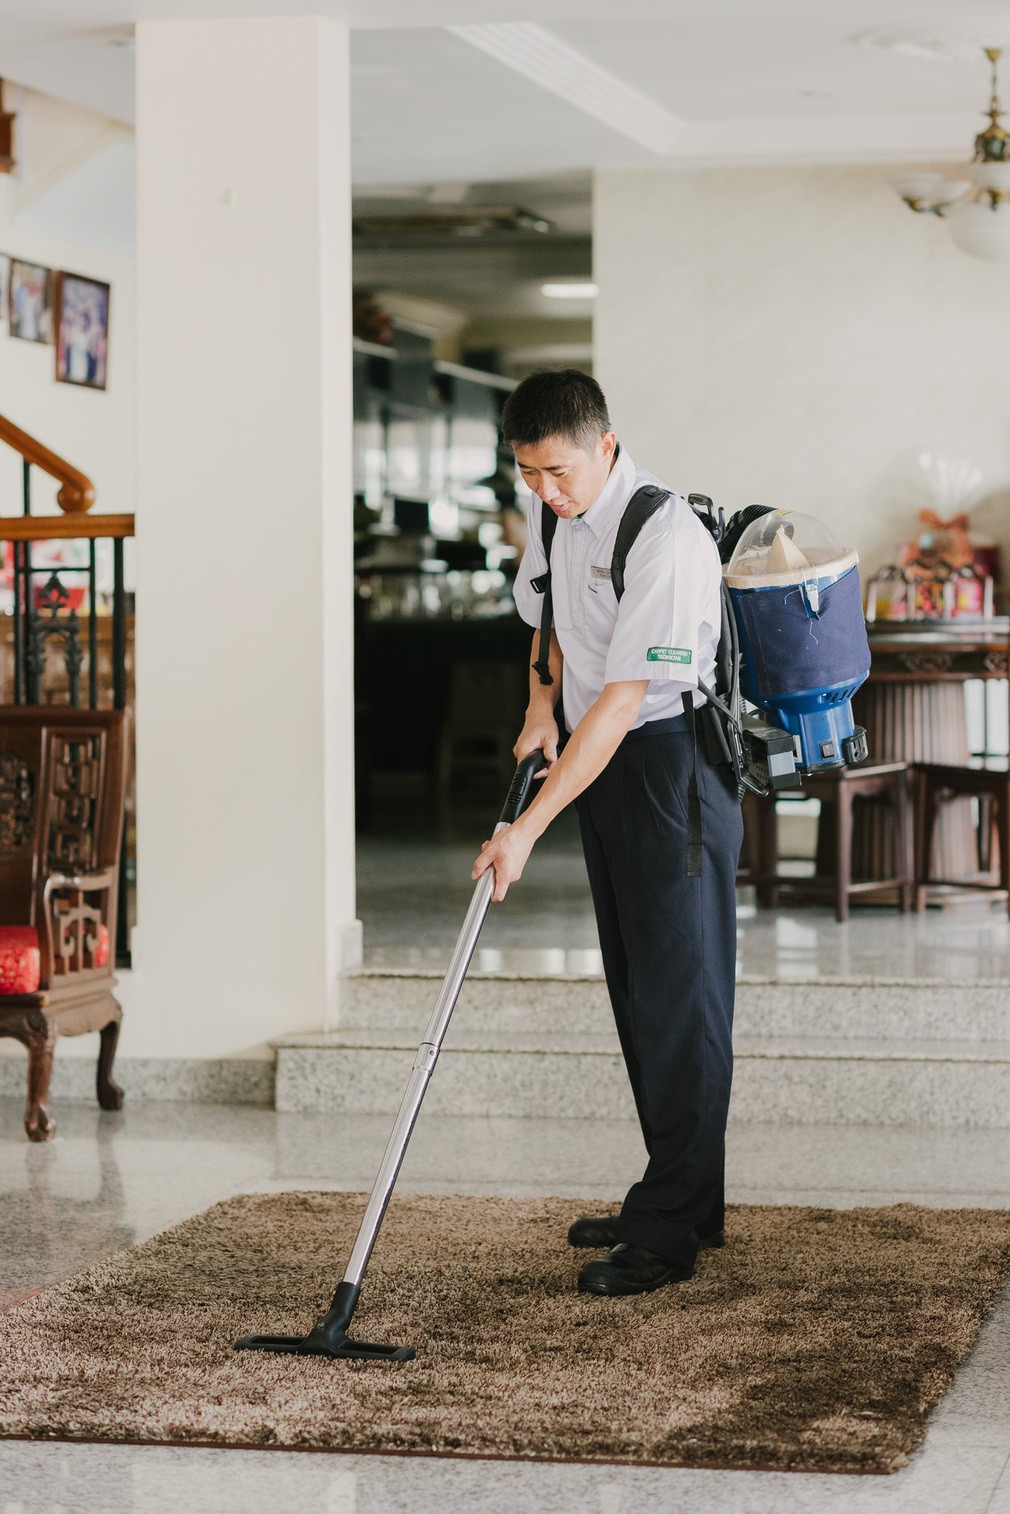 Carpet Cleaning Service In Singapore